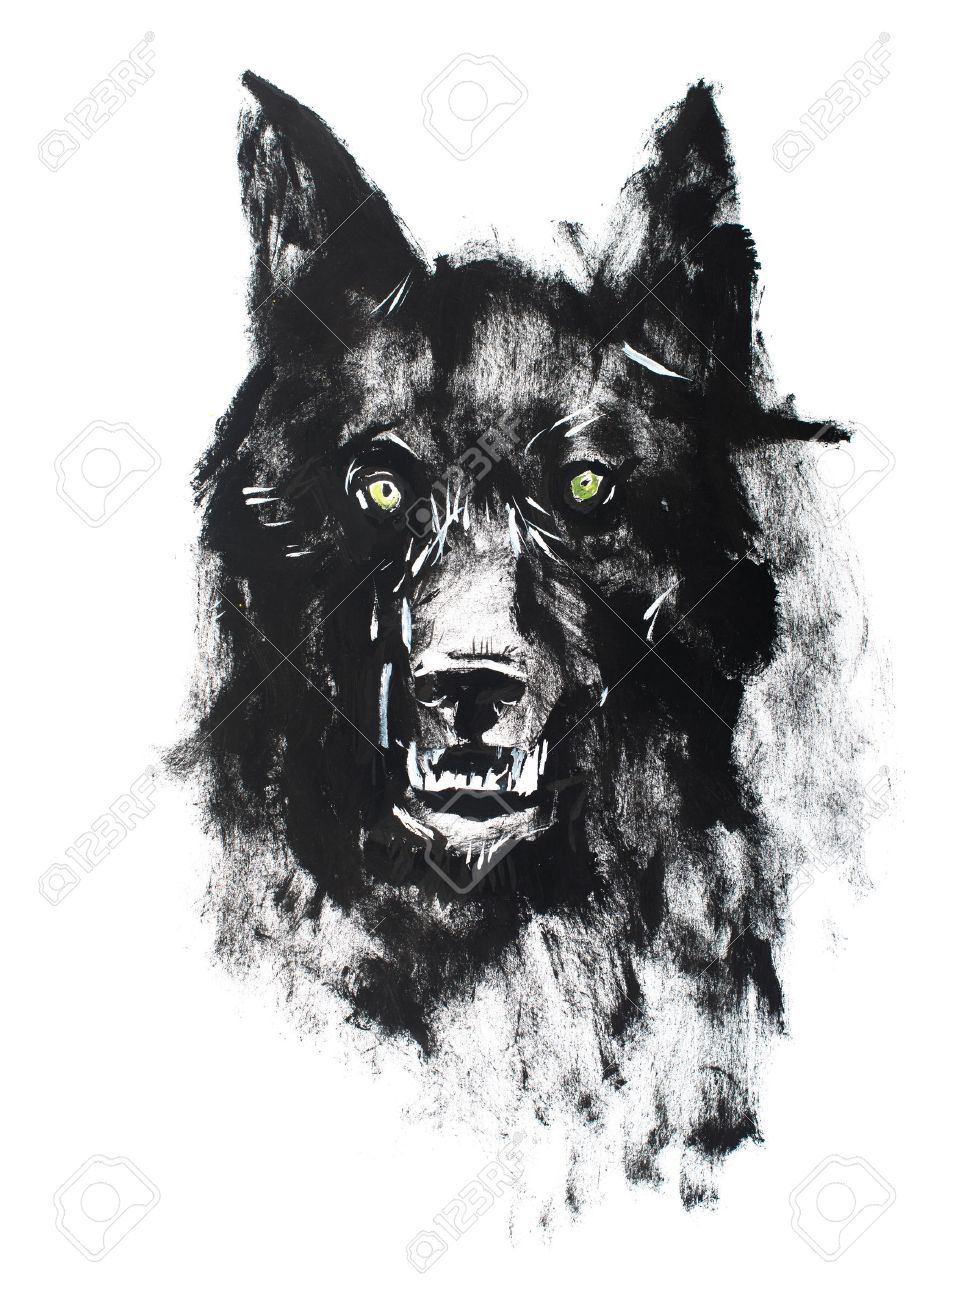 fc7b1b400 Stock Photo - Watercolor drawing of black angry looking wolf. Animal  portrait on white background